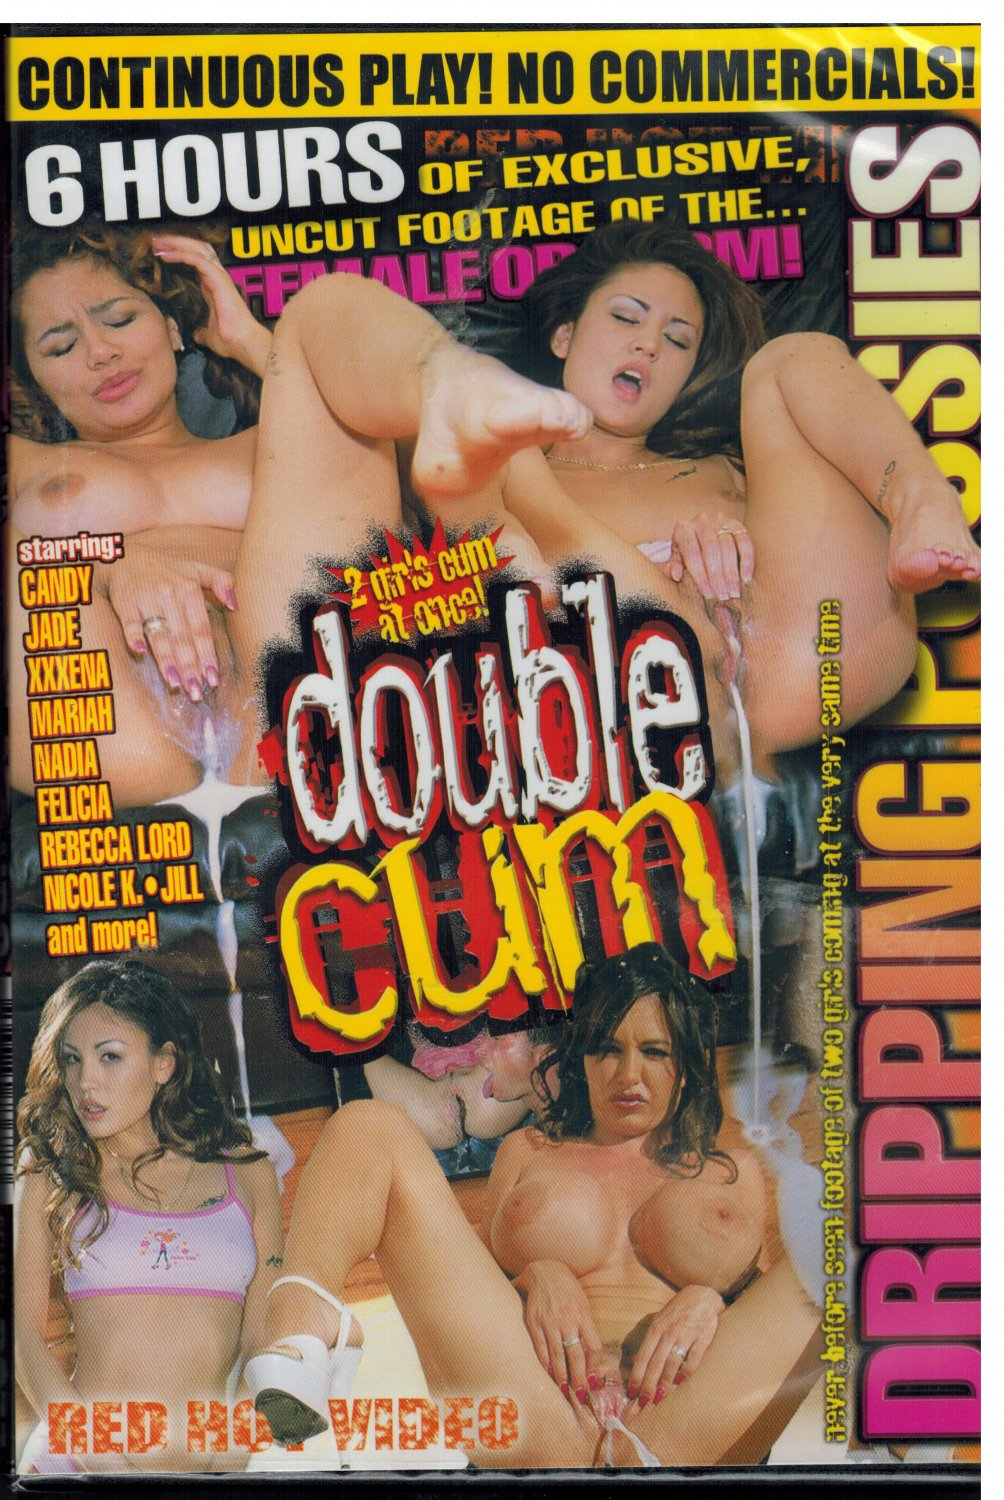 Double Cum Lesbian Squirting All Sex Buy 3 Get 1 Free